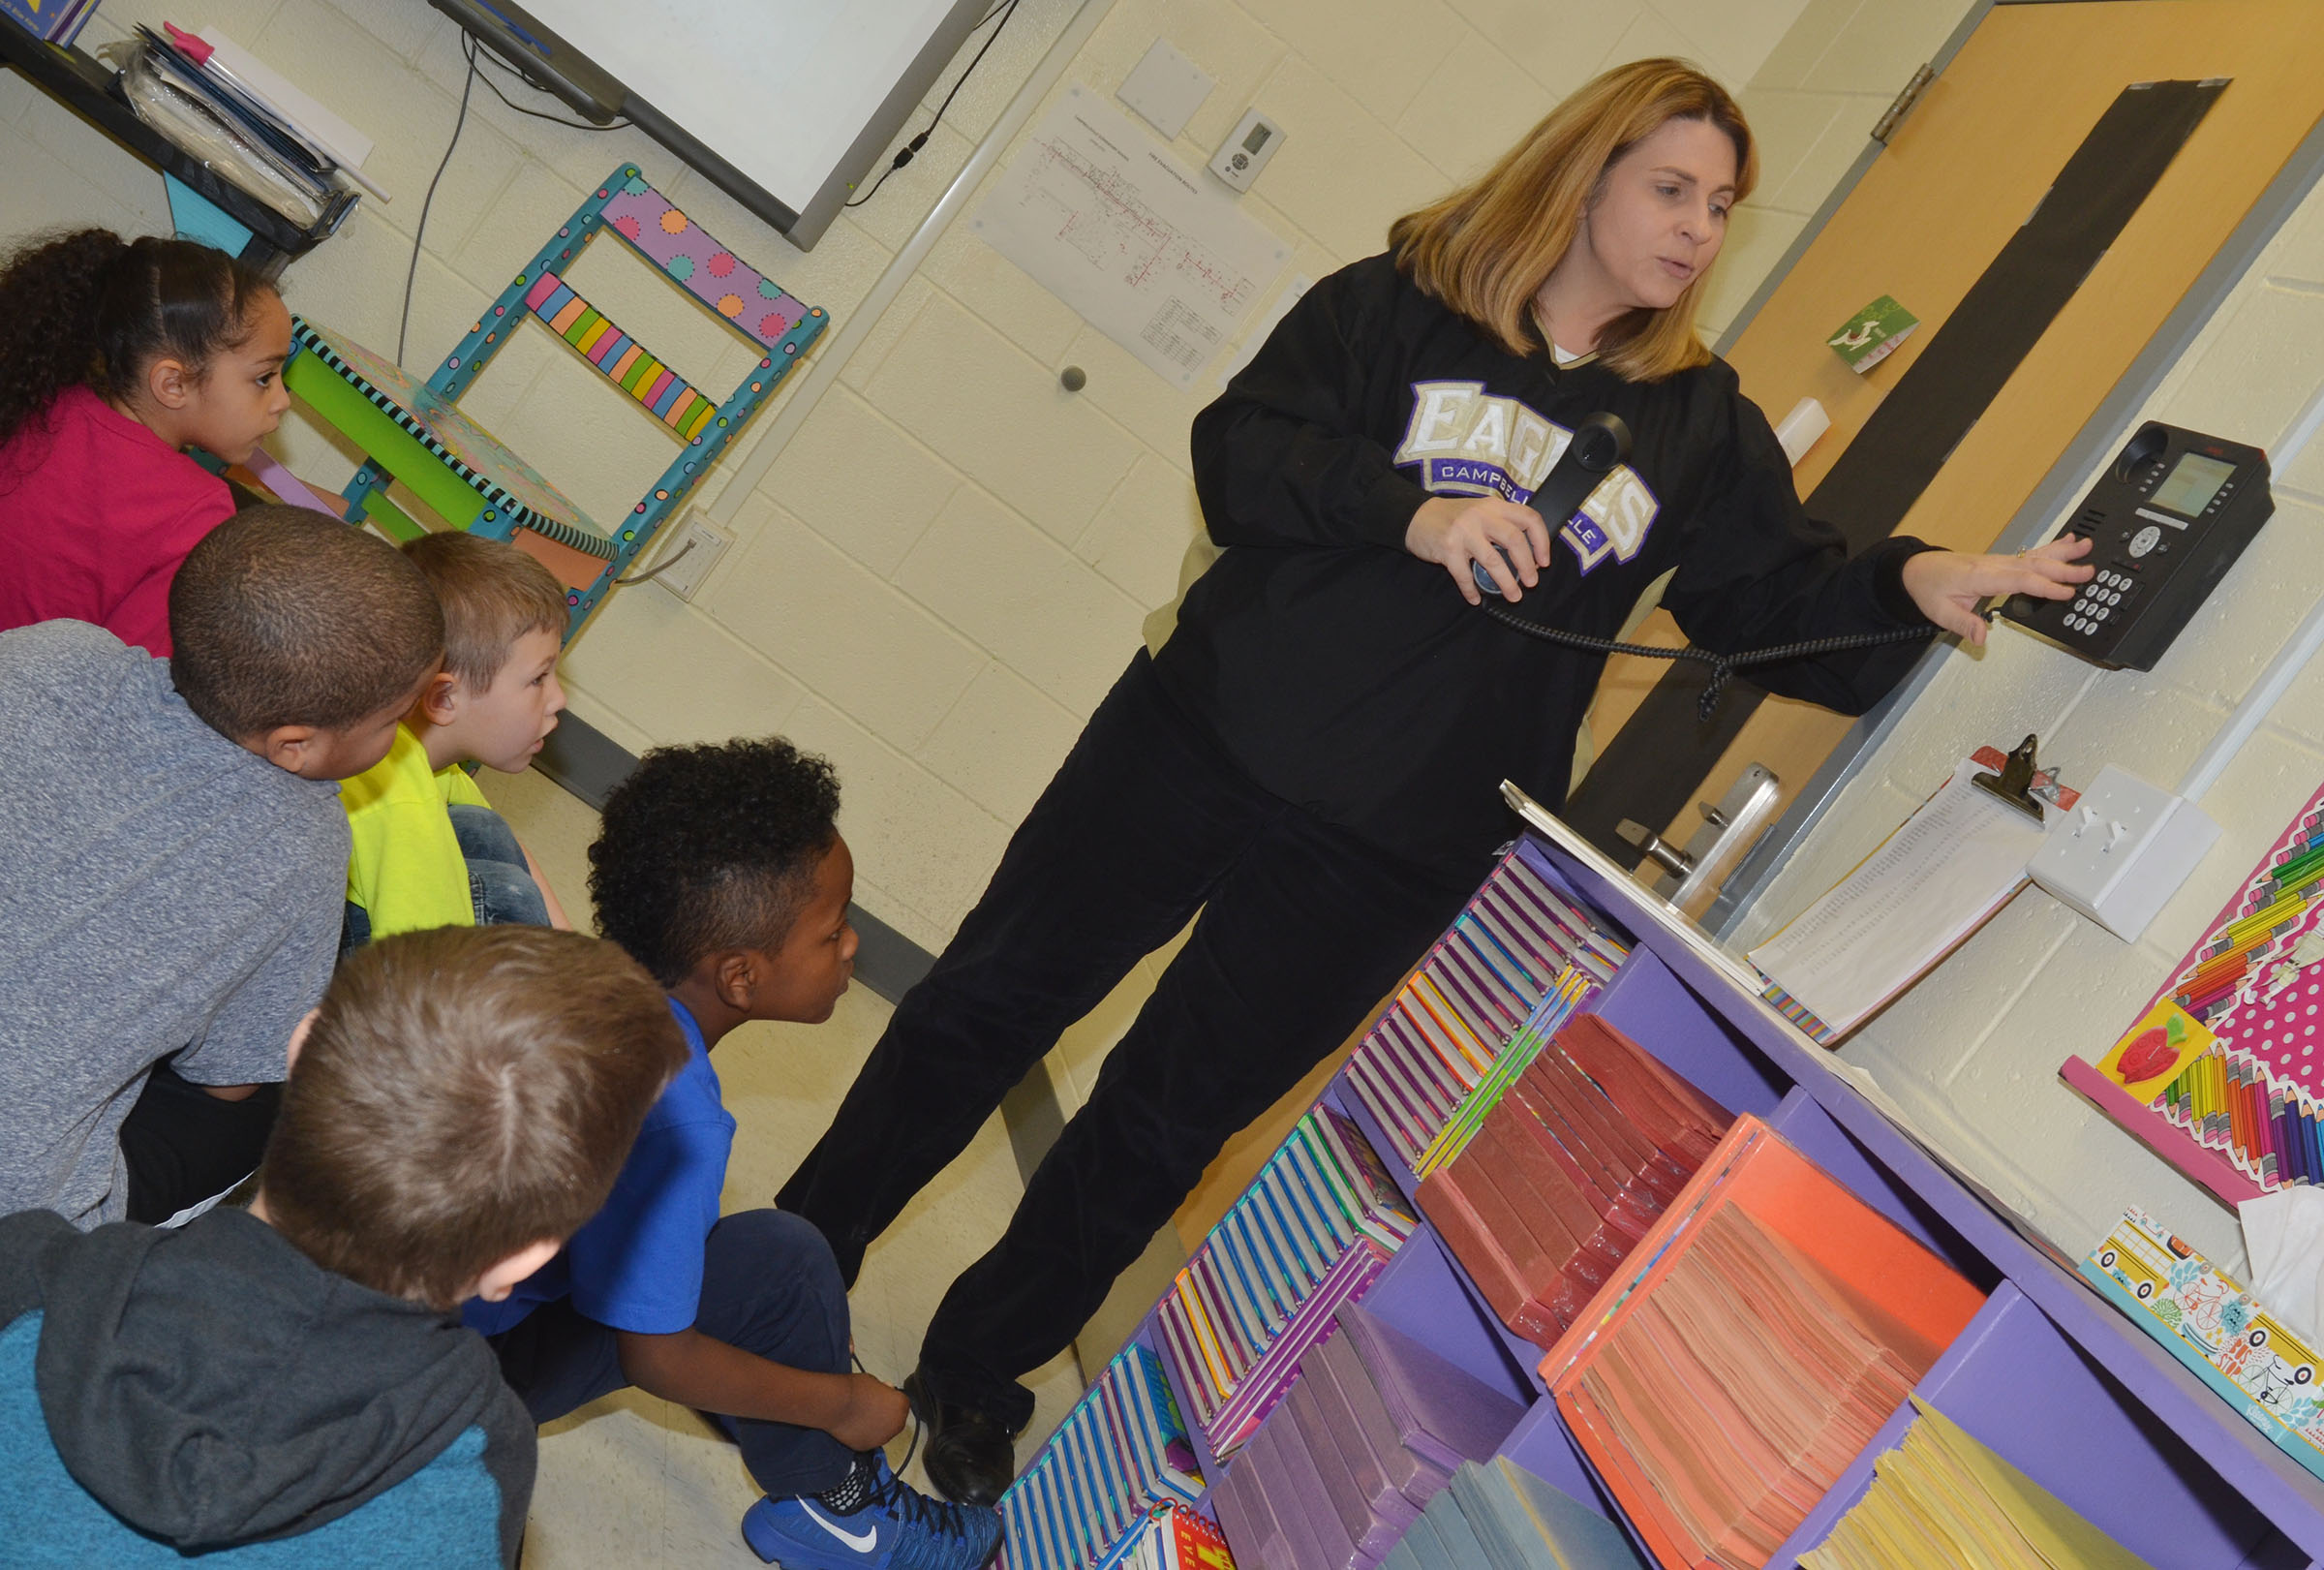 CES Guidance Counselor Sonya Orberson shows students how to call 911 in case of an emergency.